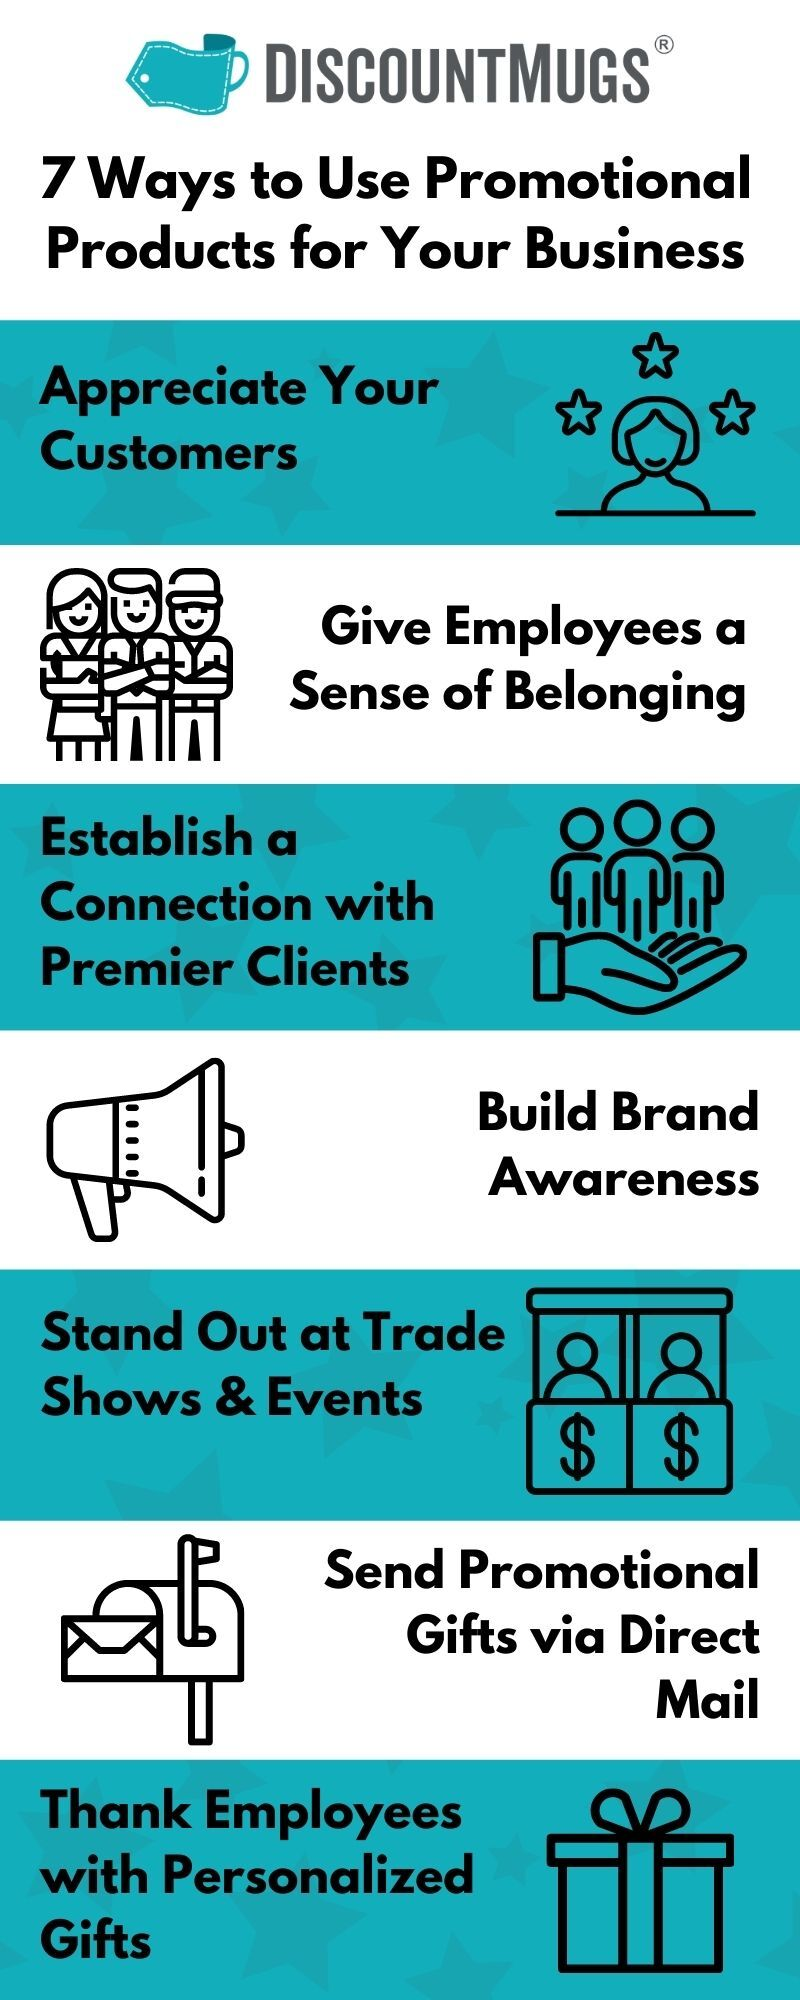 Discount Mugs - Infographic - 7 Ways to Use Promotional Products for Your Business